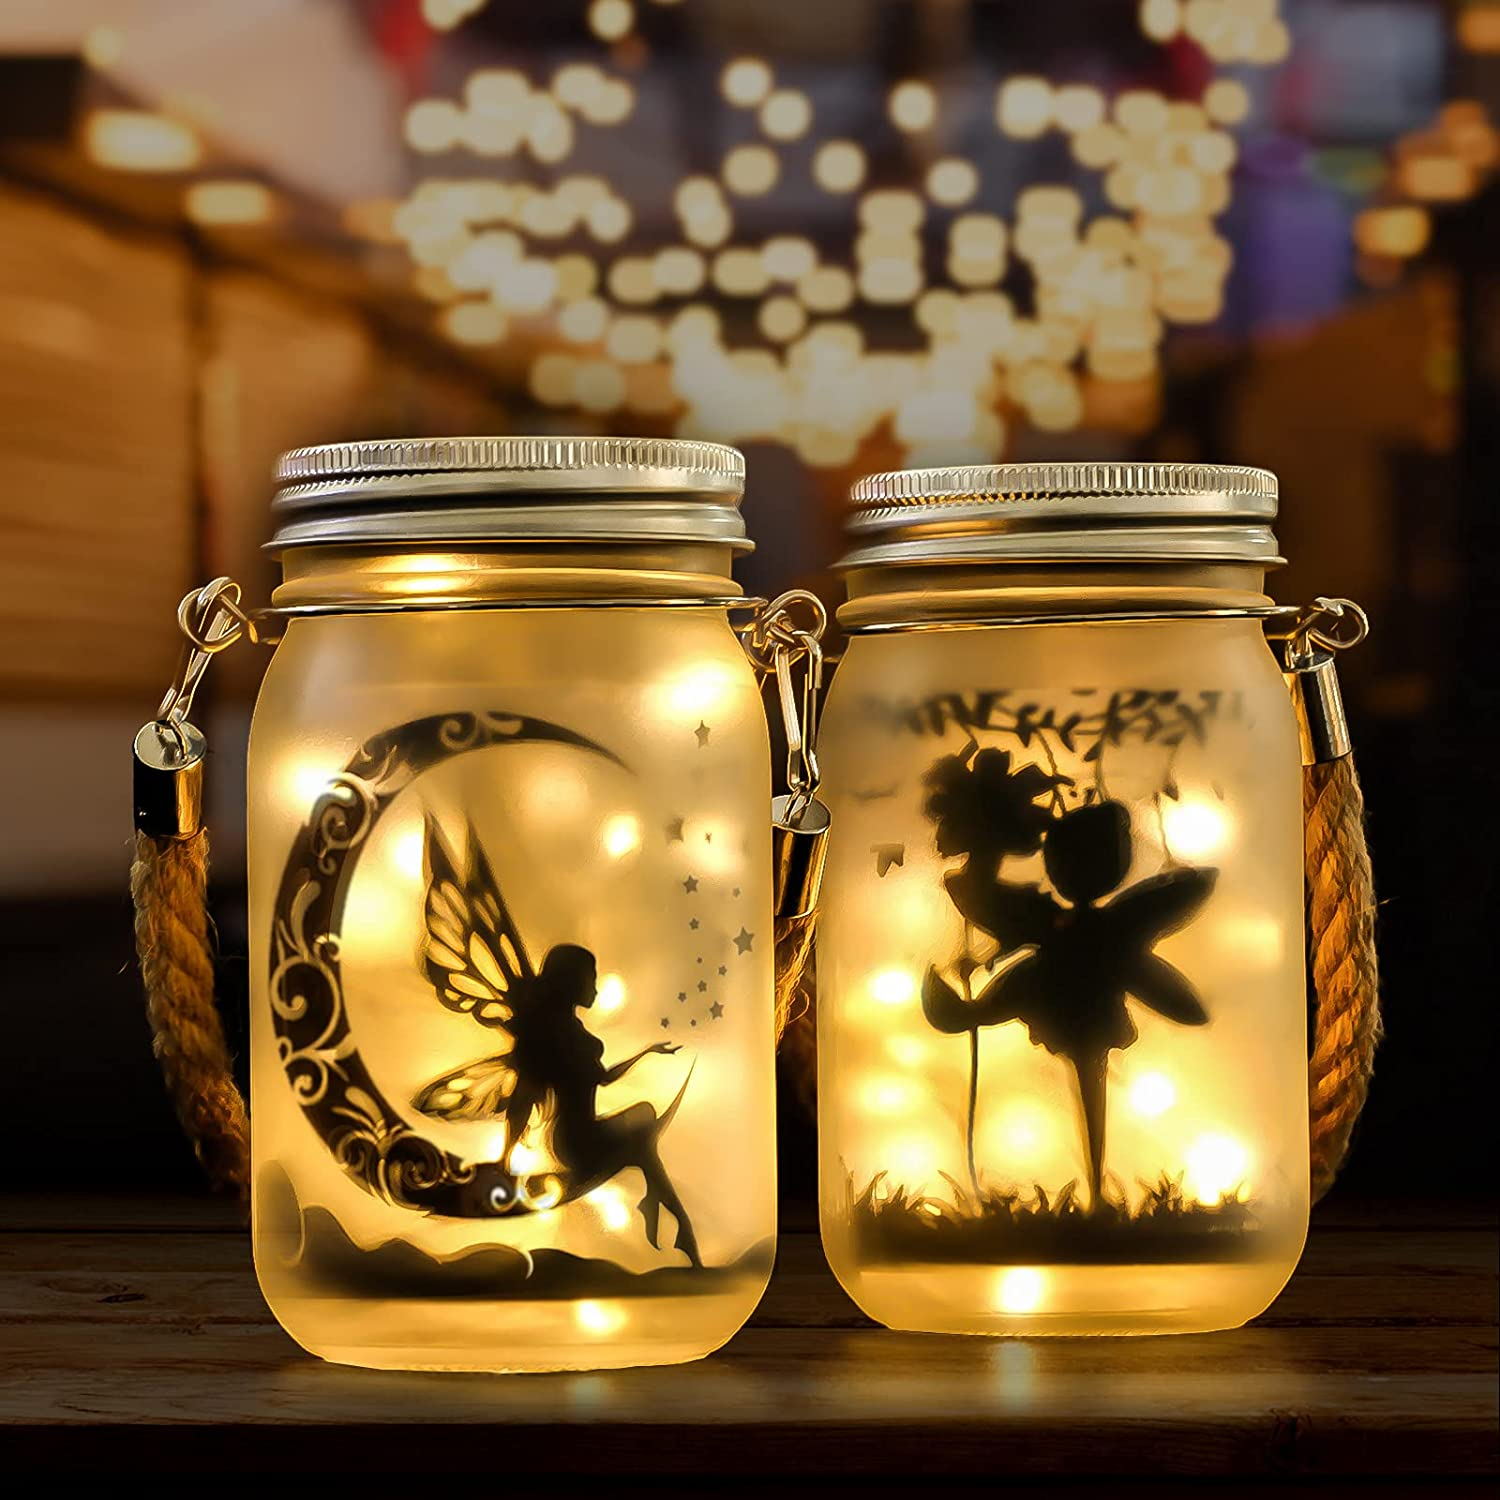 2 Pack Hanging Solar Lanterns Outdoor, Solar Fairy Lights, Outdoor Fairies Decor Gifts for Backyard Garden Patio Balcony Porch Decorations, Frosted Glass Mason Jar Lights, 30 LED Mini String Lights